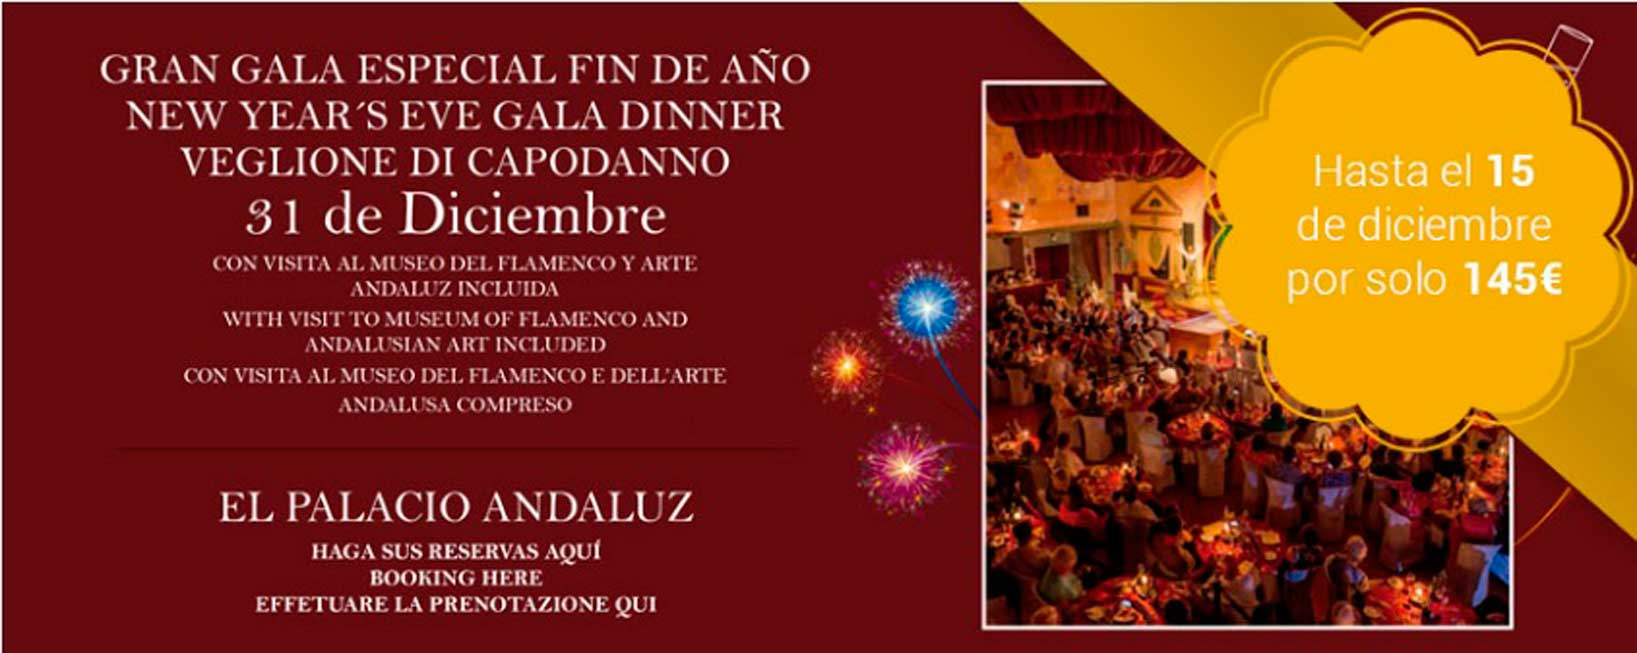 special gala end of year